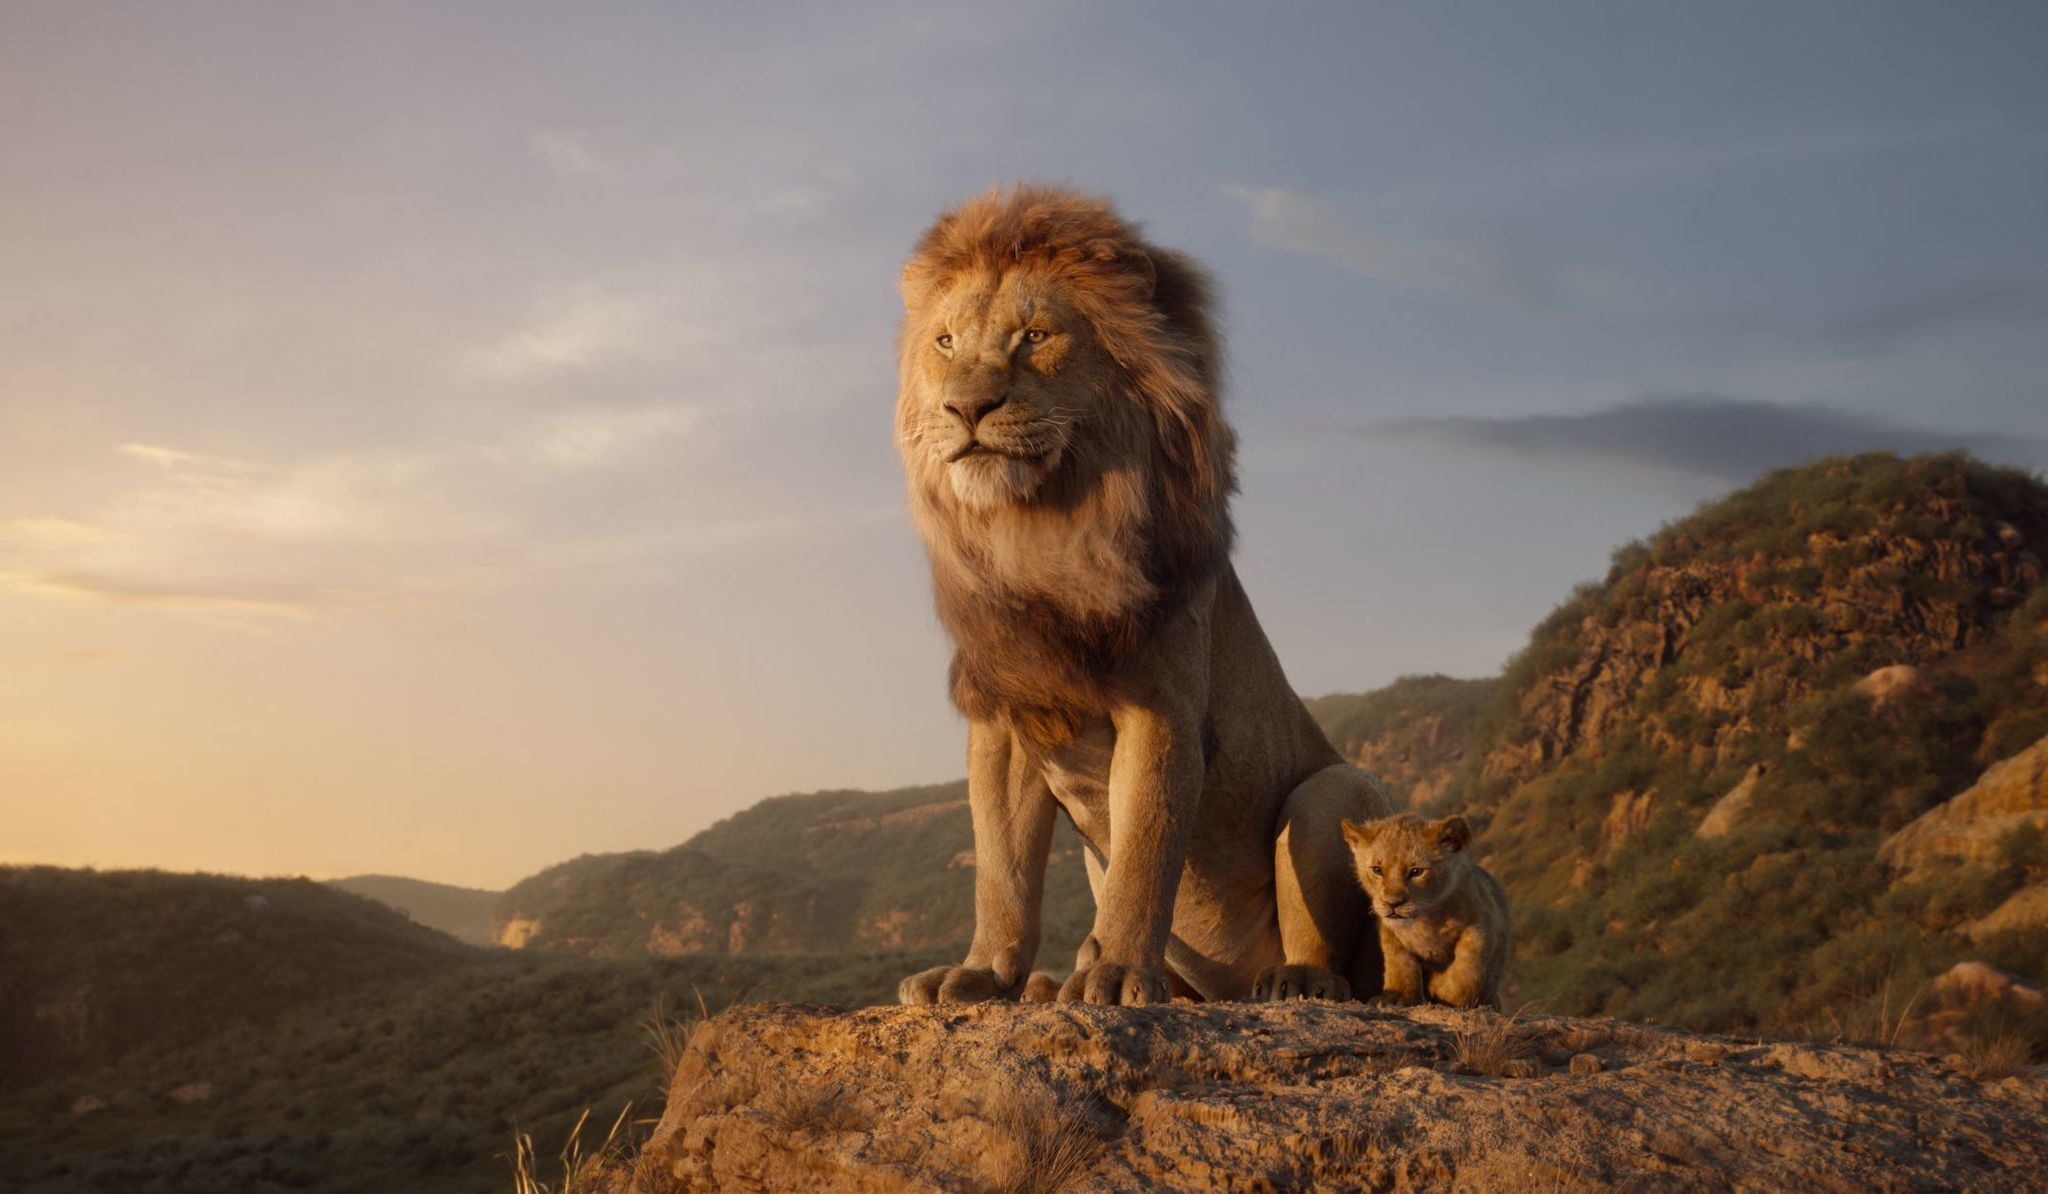 """""""The Lion King,"""" directed by Jon Favreau and featuring the voices of James Earl Jones as Mufasa and JD McCrary as Young Simba."""